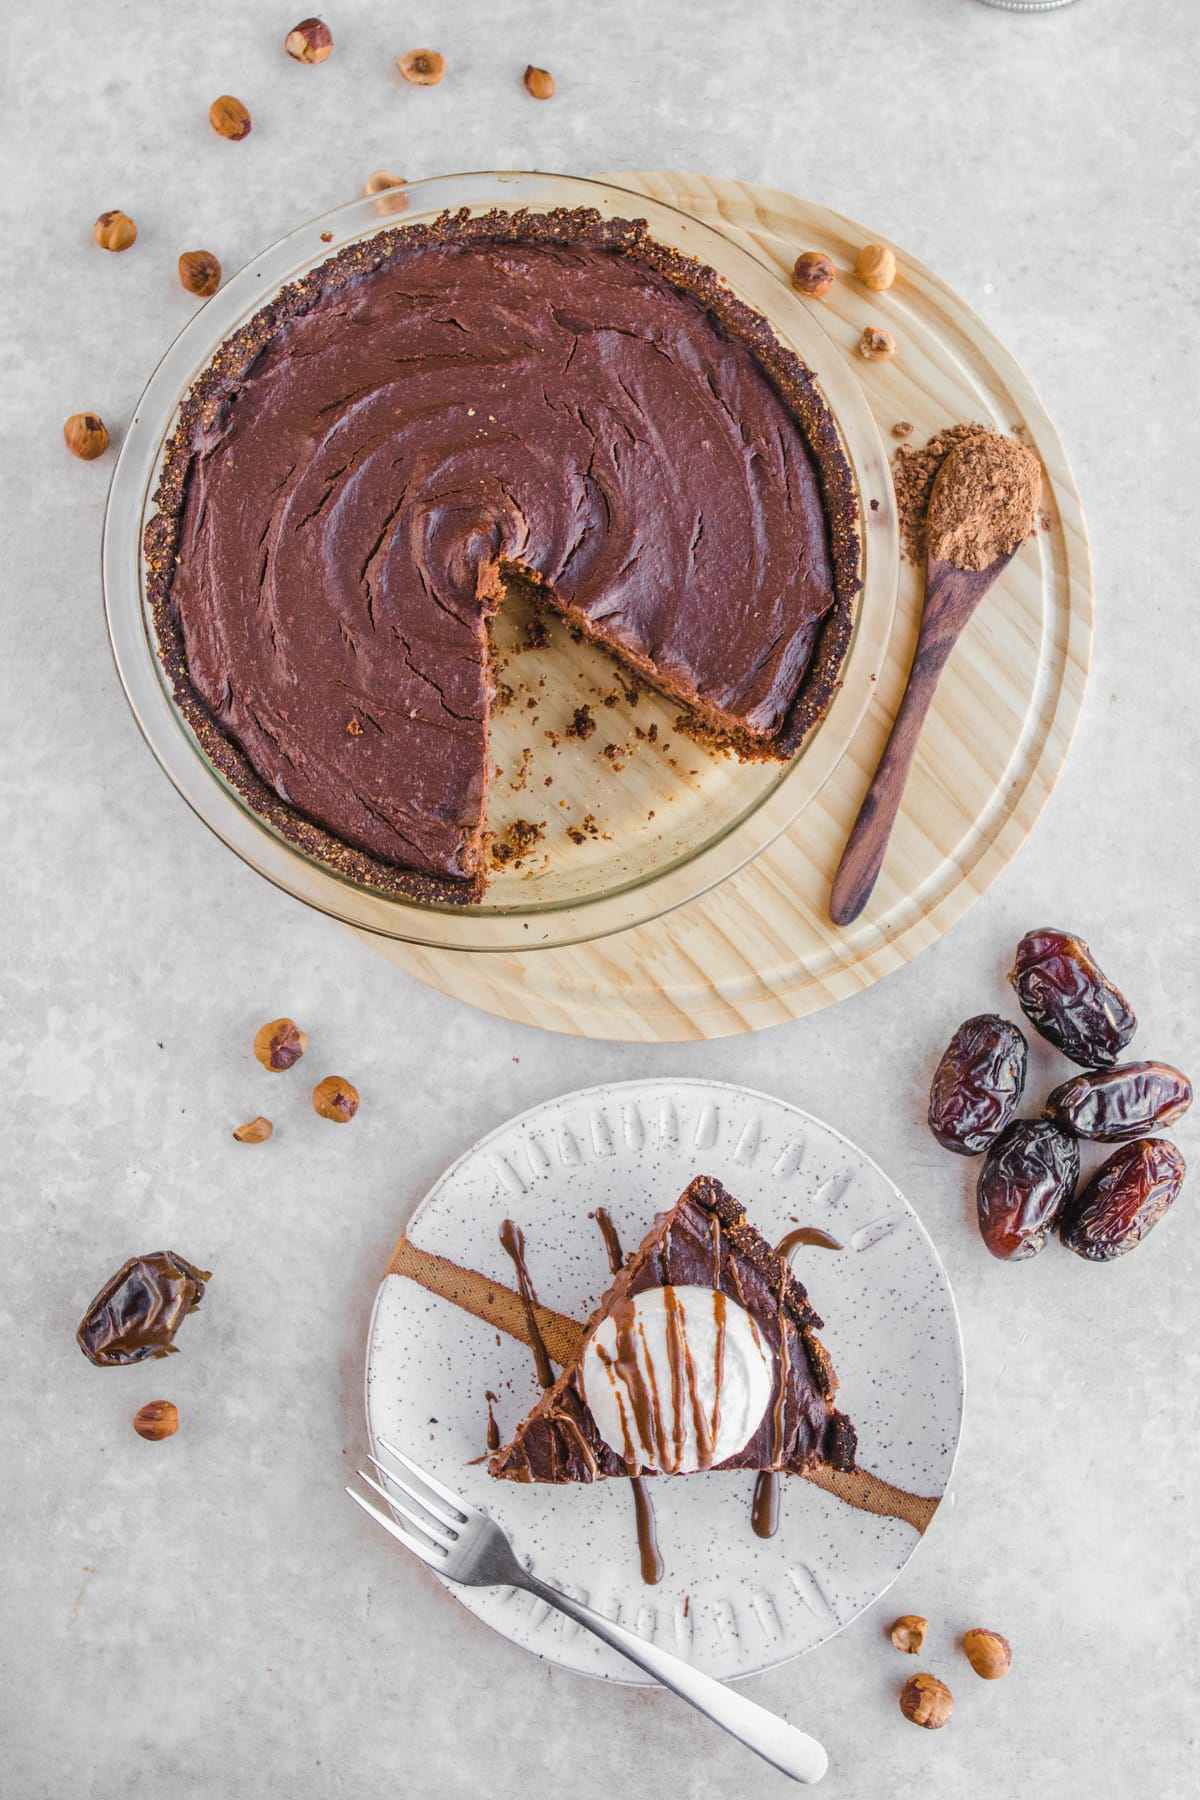 Chocolate Hazelnut Pudding Pie on White Plate with Whipped Cream